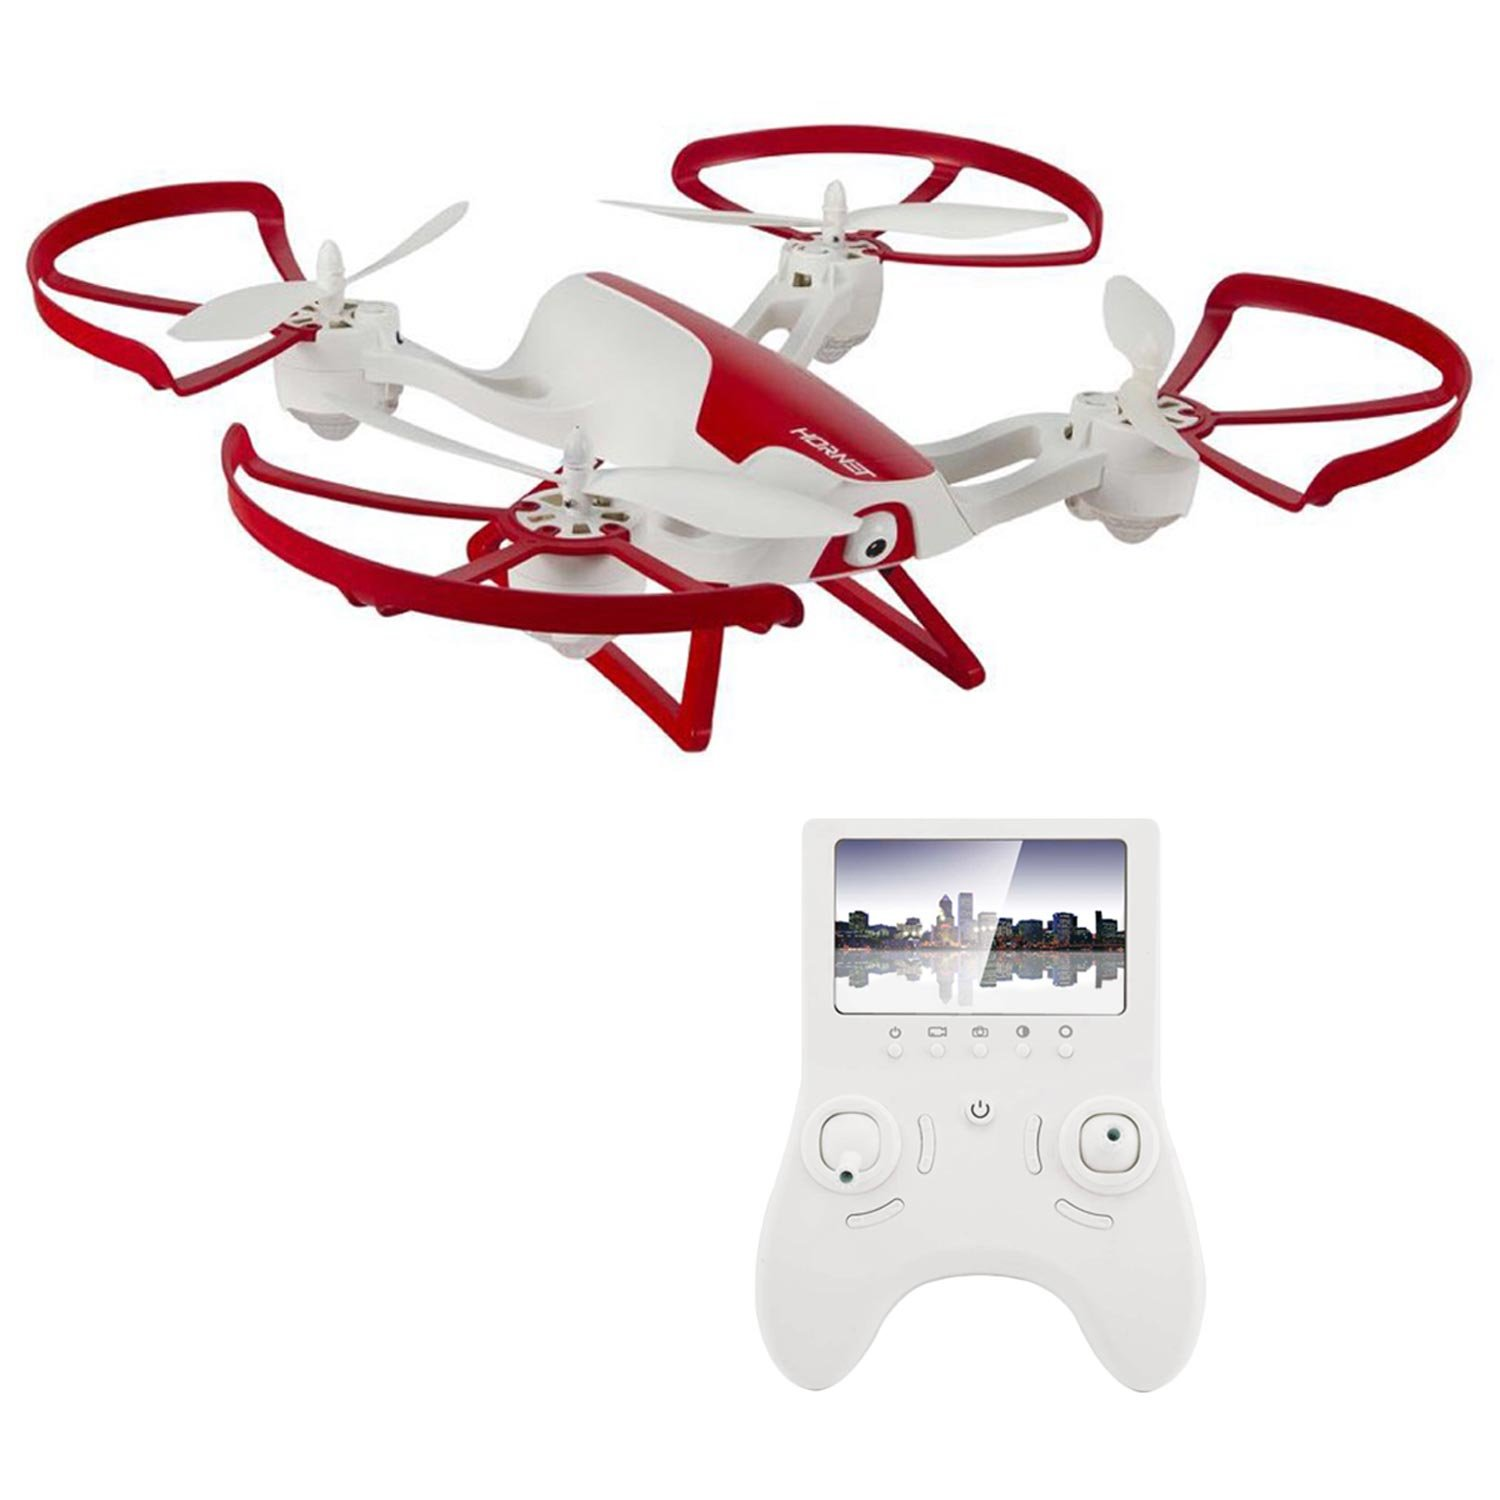 Hornet FPV Drone with HD Camera 720p - RC Quadcopter with Altitude hold (Includes Extra Batteries)